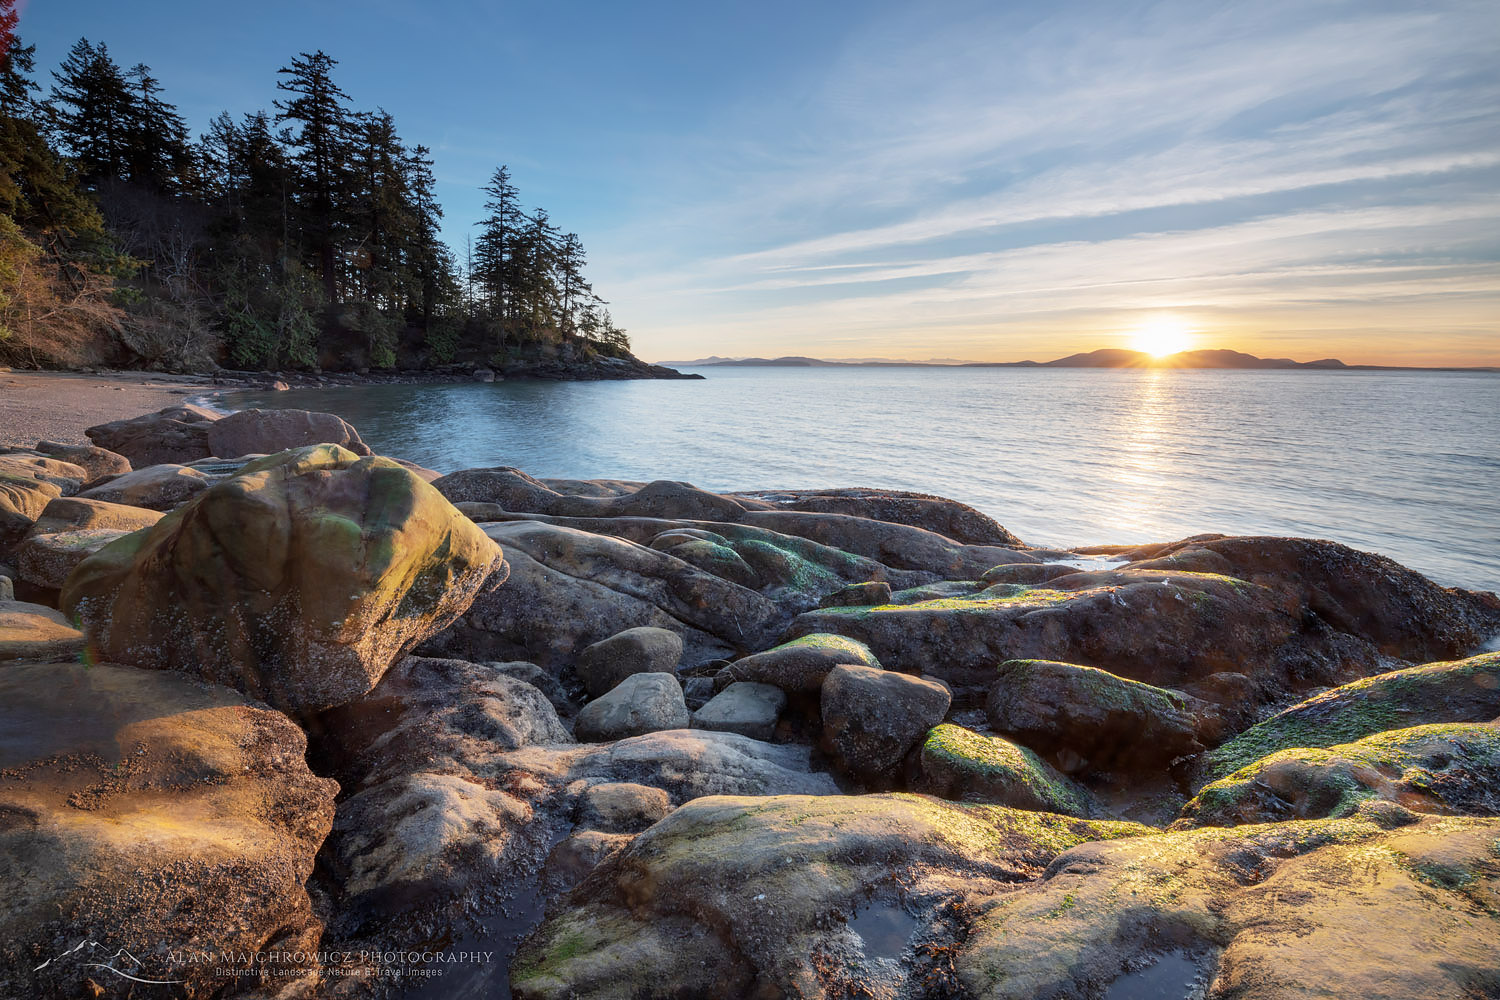 Wildcat Cove Sunset, Samish Bay Larrabee State Park, Washington